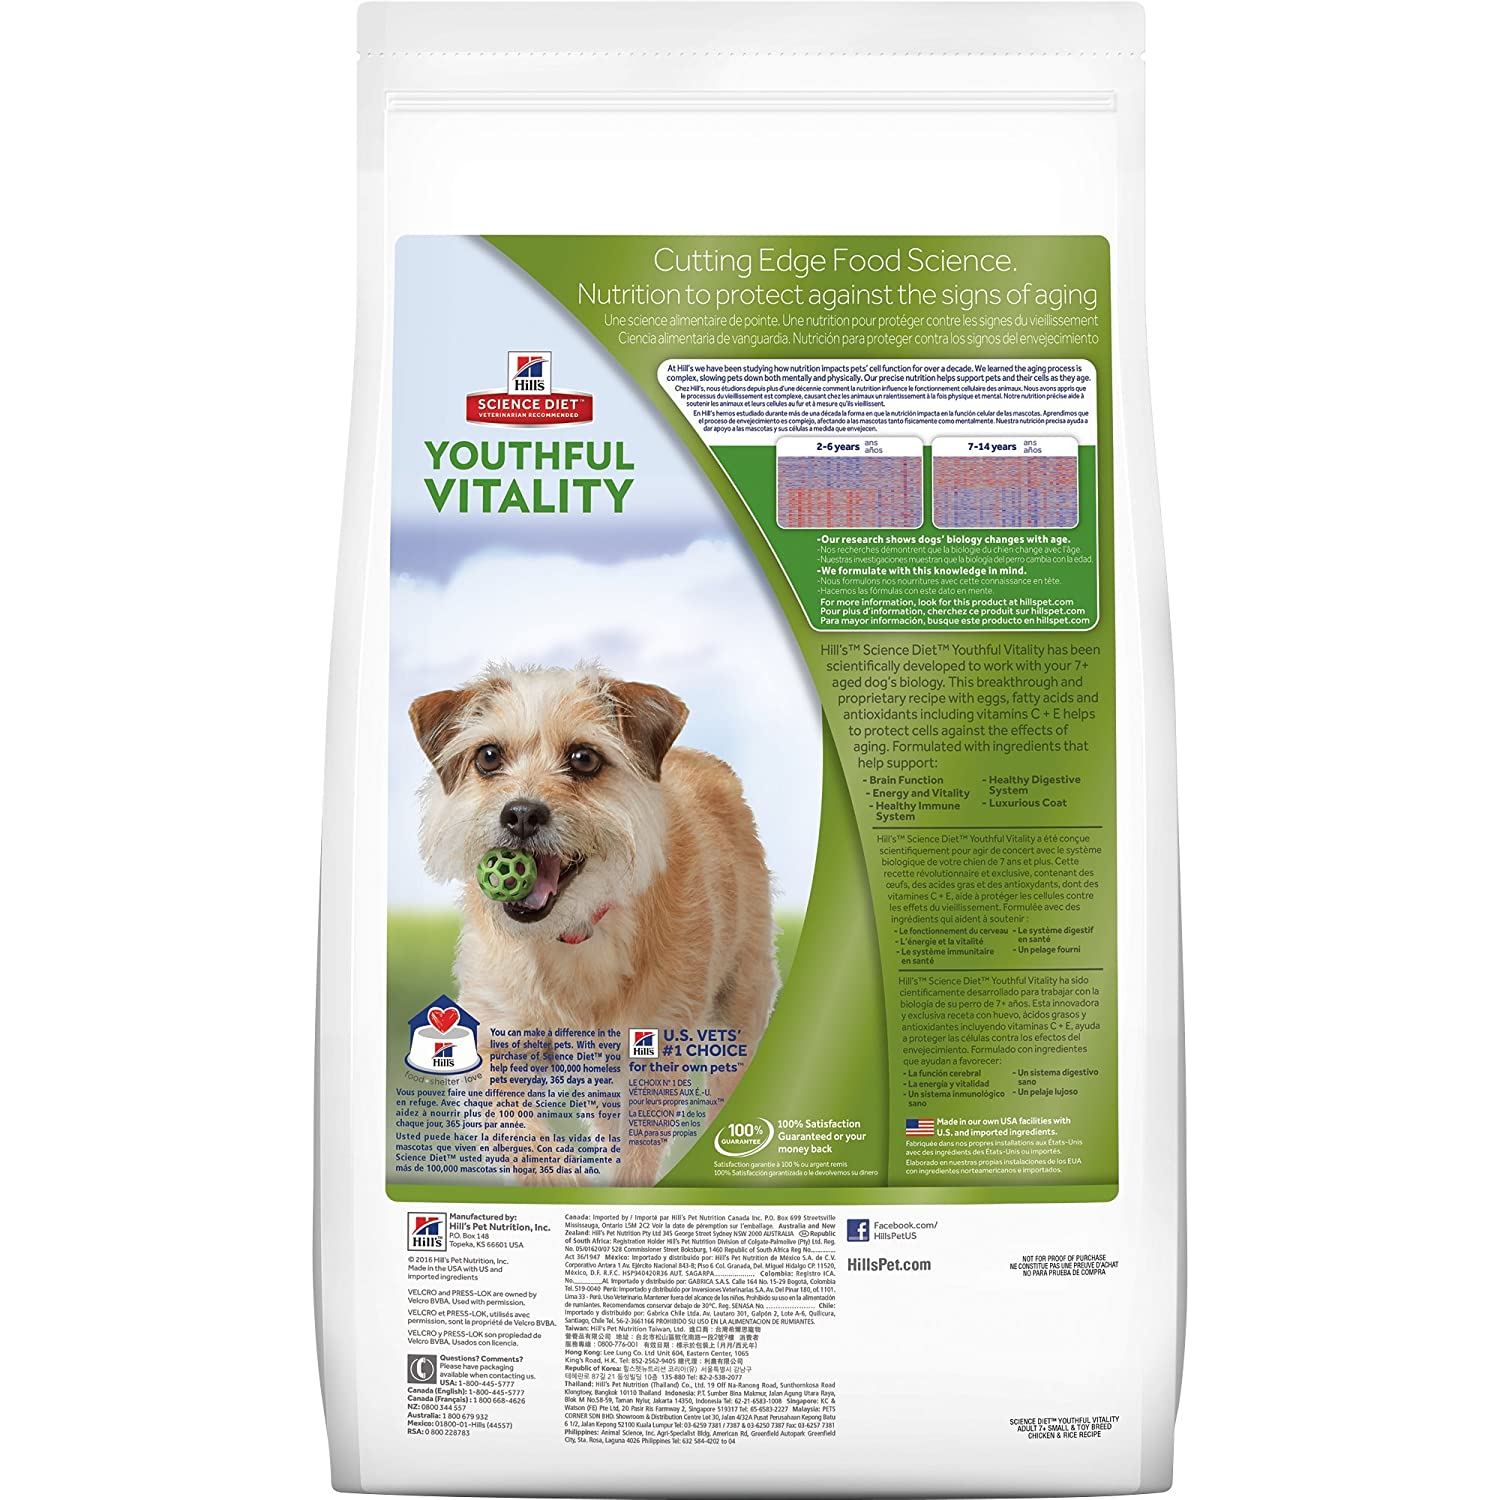 Hills Science Diet Senior Dog Food, Adult 7+ Small & Toy Breed Youthful Vitality Chicken & Rice Recipe Dry Dog Food, 12.5 lb Bag: Pet Supplies: Amazon.com